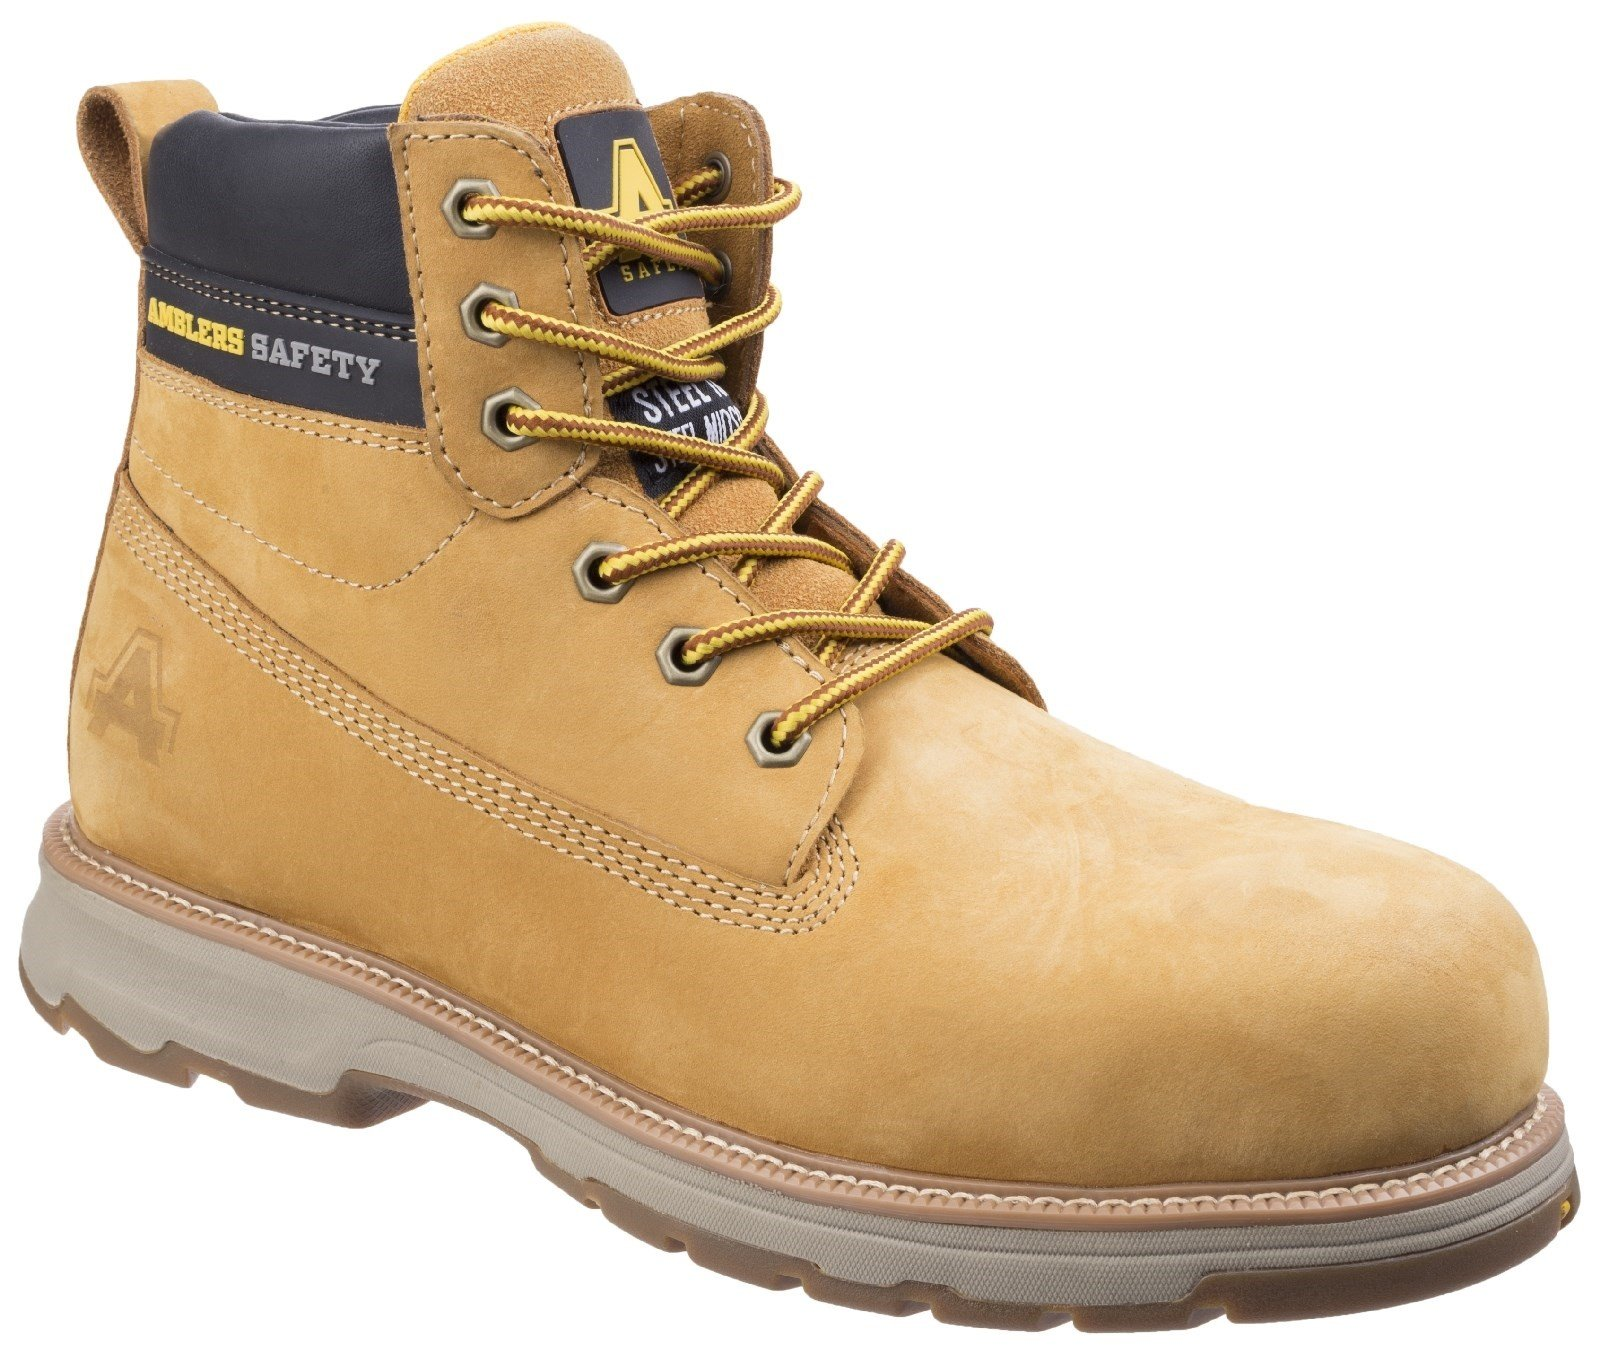 Amblers Unisex Safety Lightweight Full Grain Leather Boot Various Colours 25506 - Honey 6